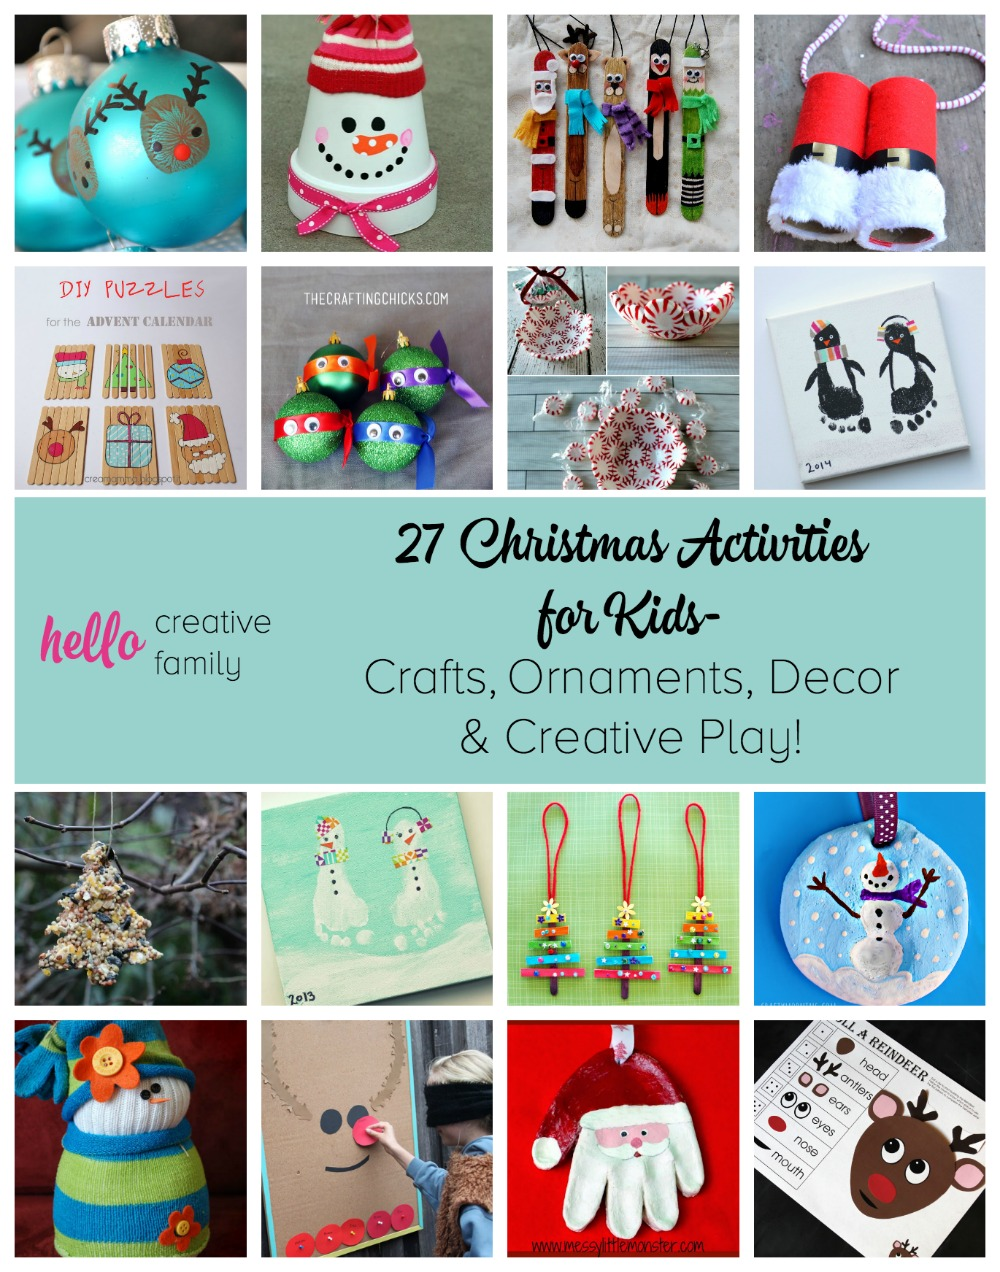 27 Christmas Activities for Kids- Crafts, Ornaments, Decor and ...